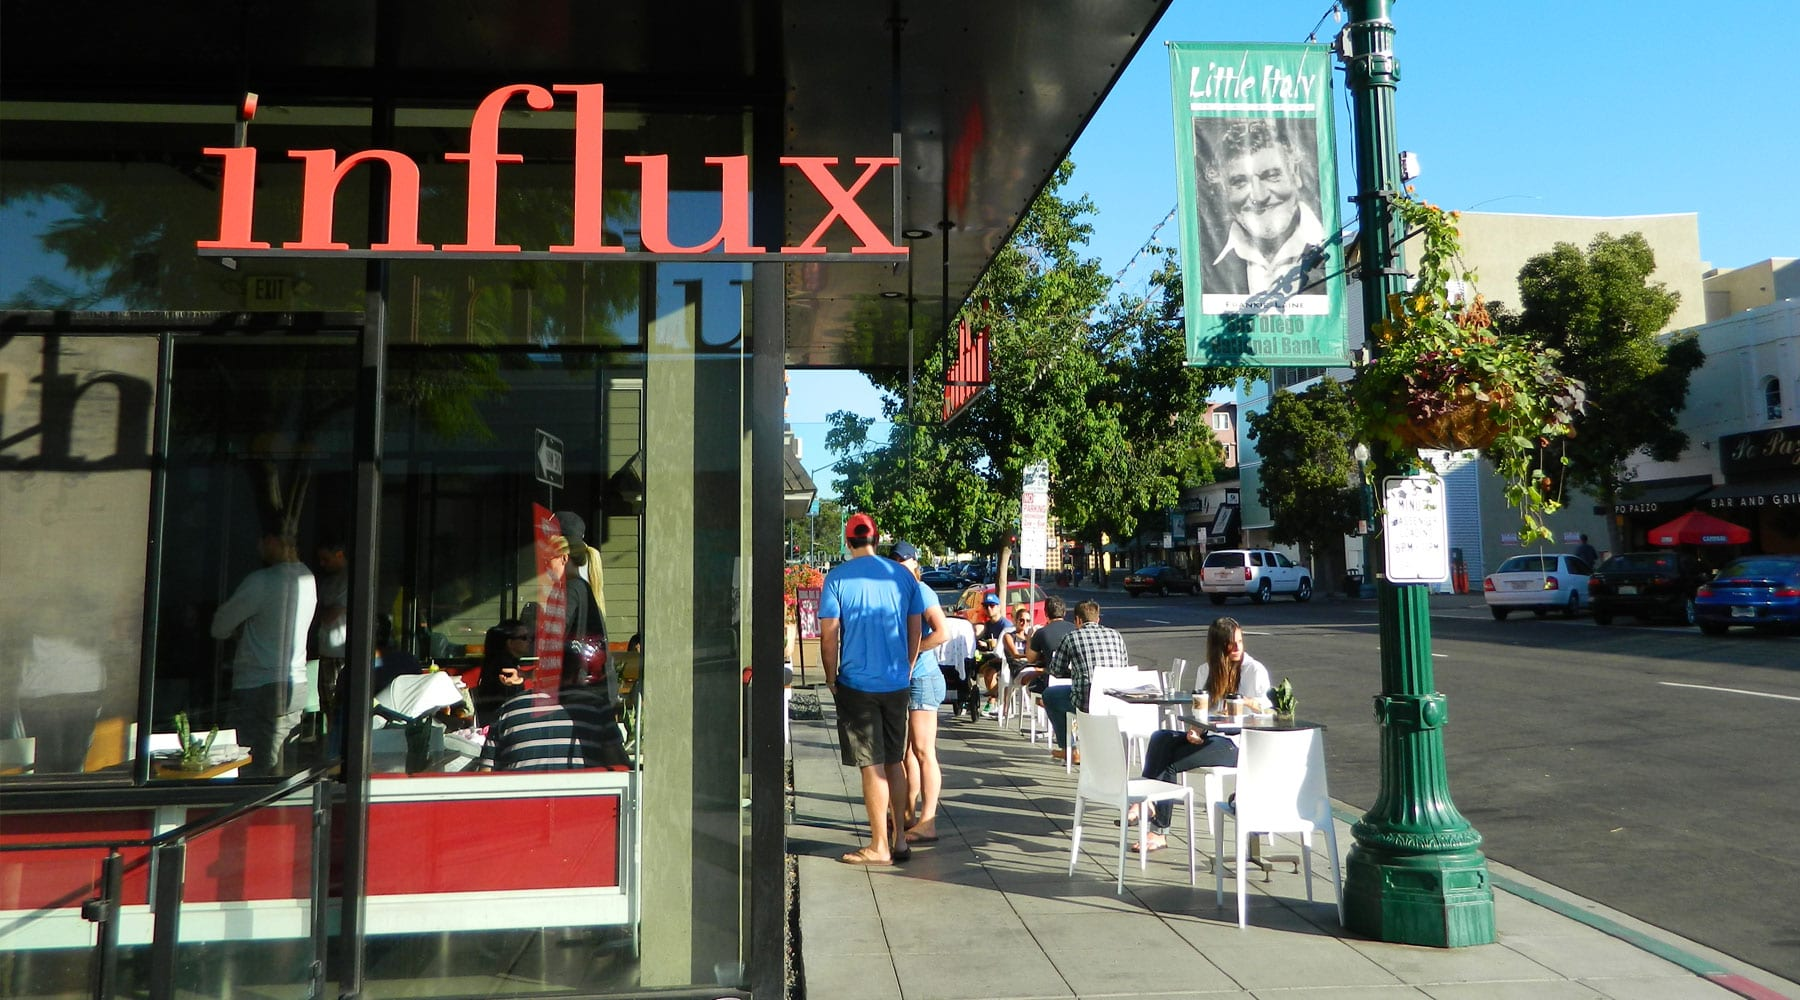 Influx Cafe Little Italy